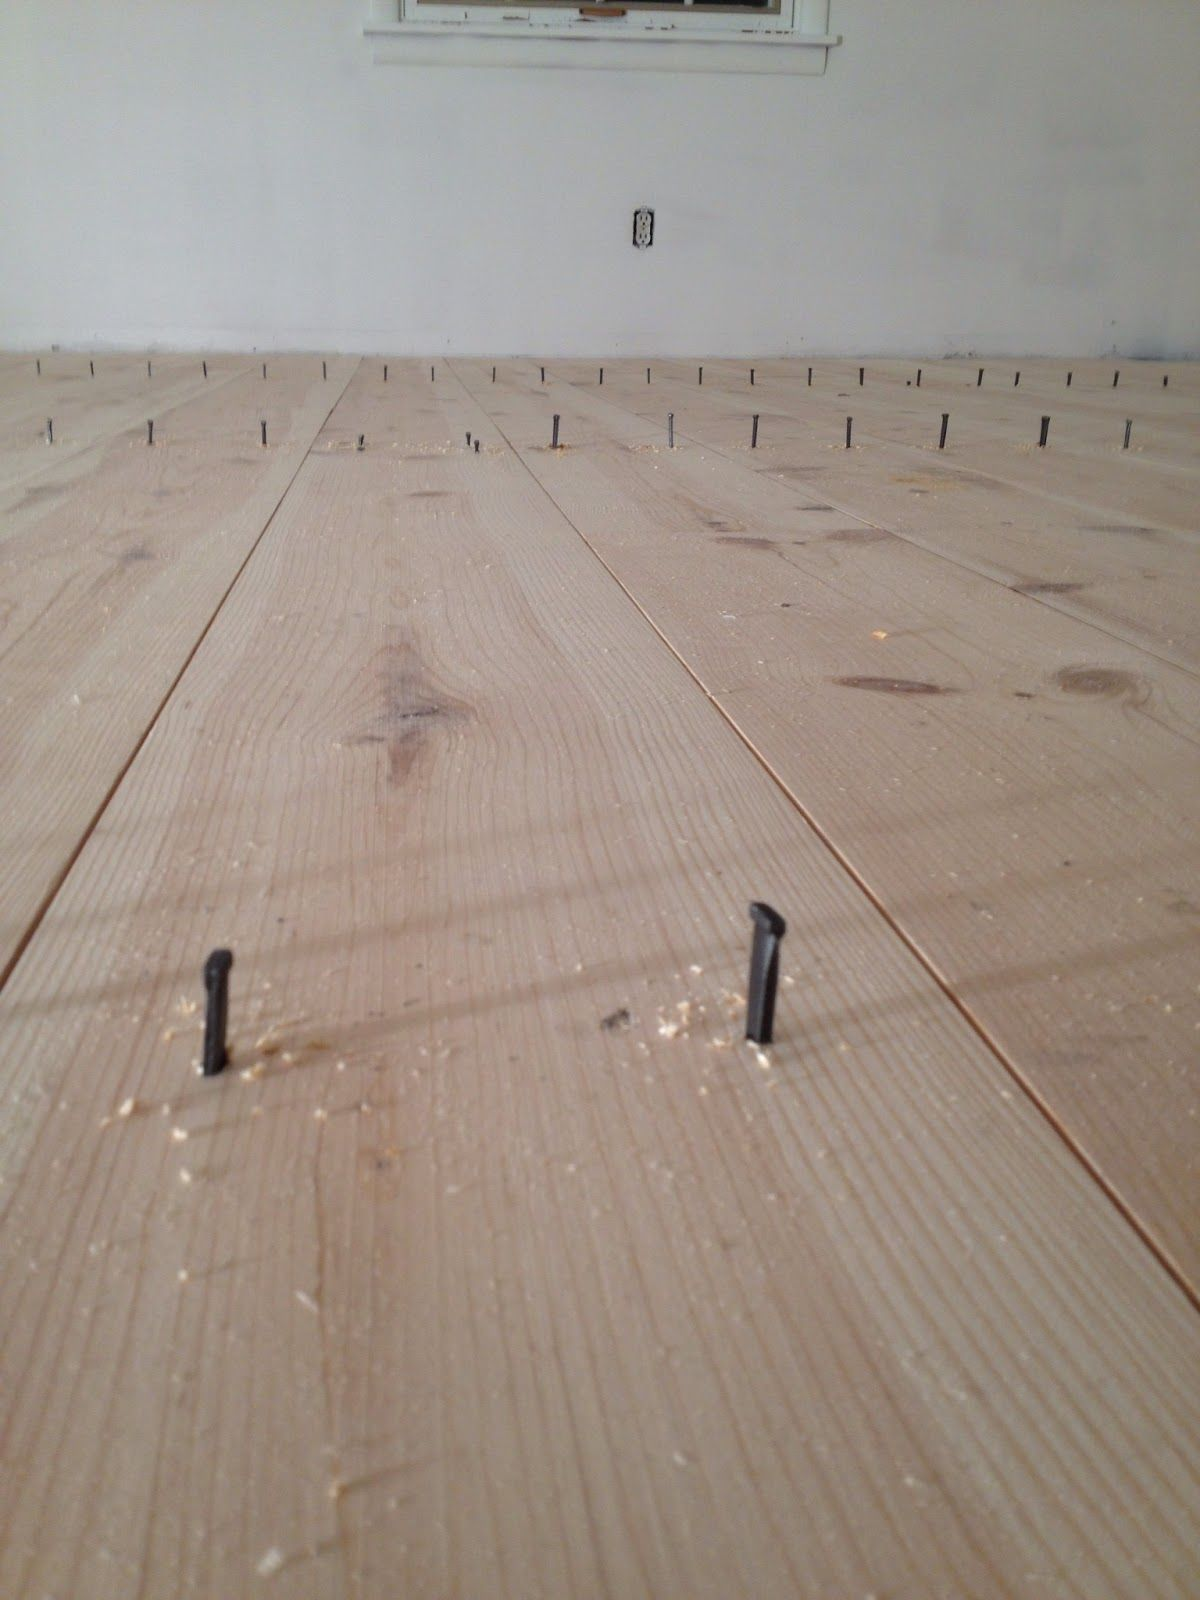 Masonry Nails In Wood Floor For Old Look Masonry Nails Wood Floors Wood